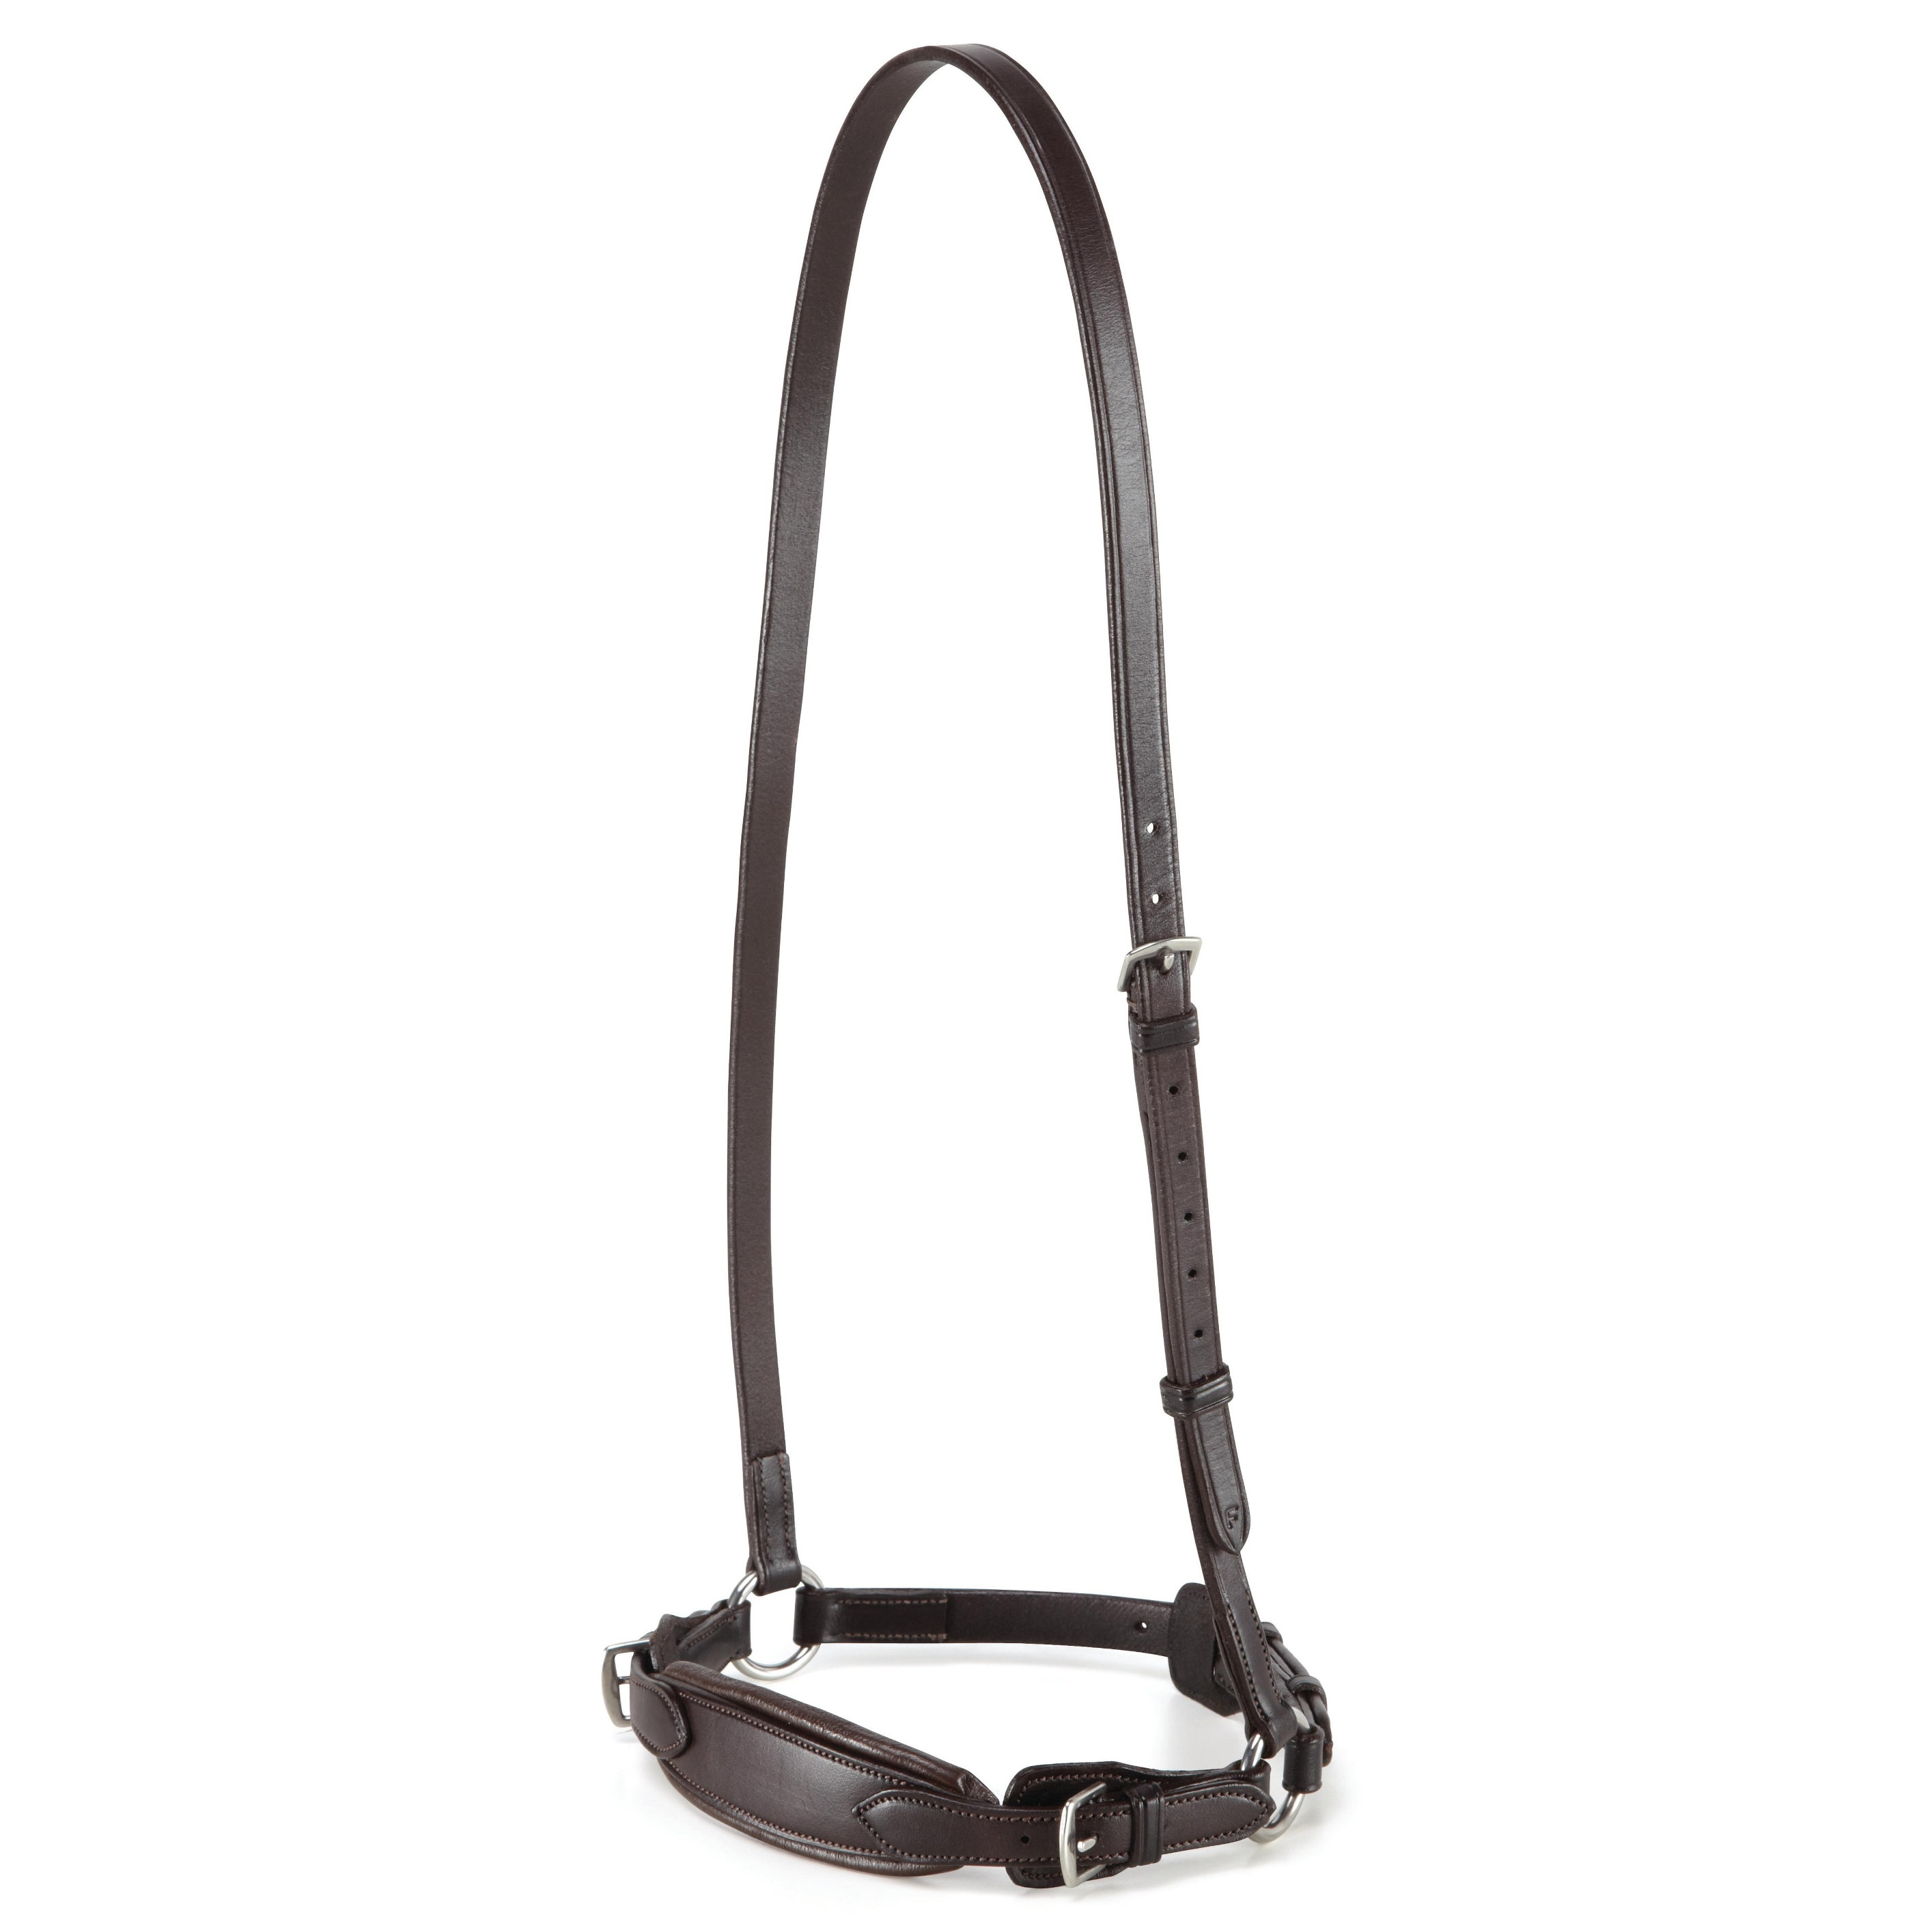 BZ391 Hy Padded Drop Nose Band